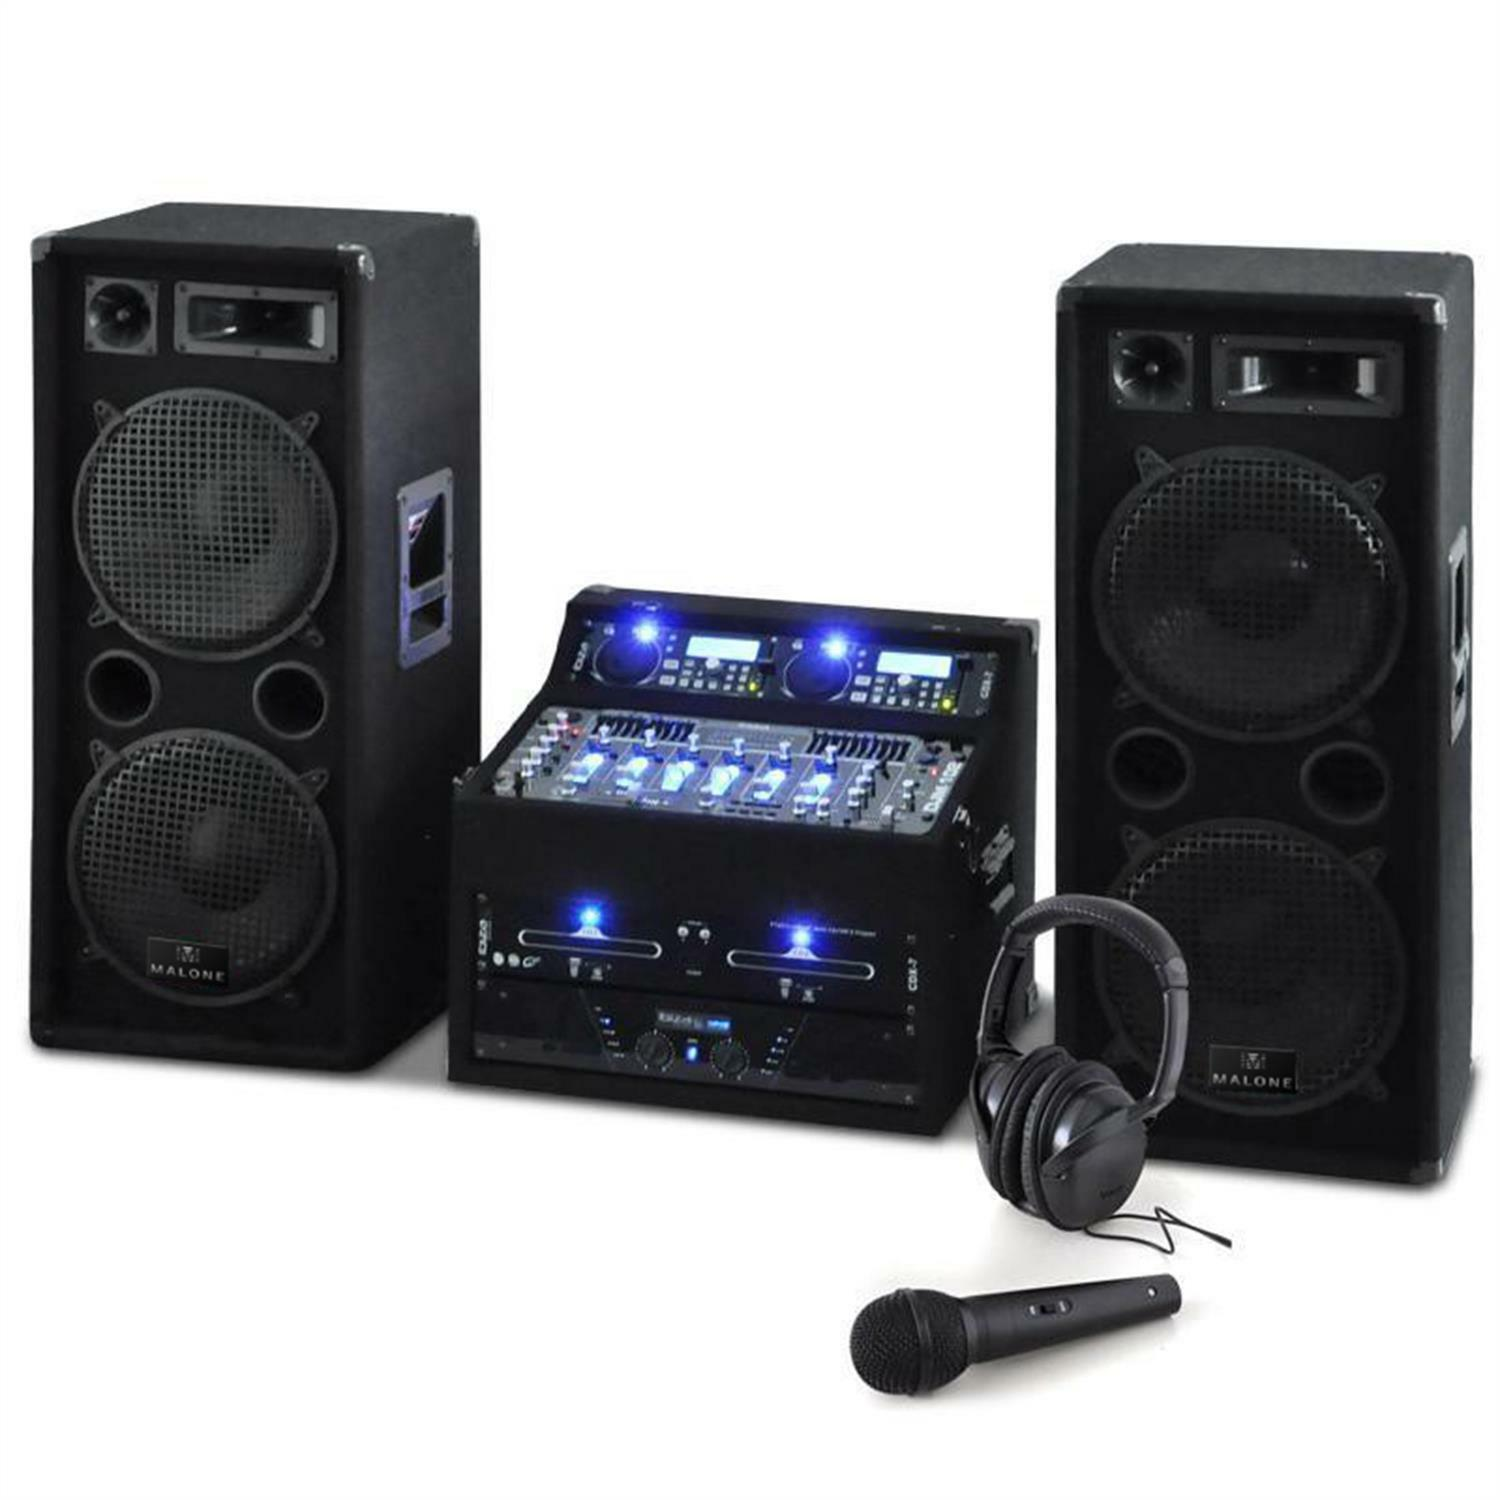 sono enceinte dj avec double lecteur cd usb ampli pa mixer 4 canaux 2000w noir eur 999 99. Black Bedroom Furniture Sets. Home Design Ideas